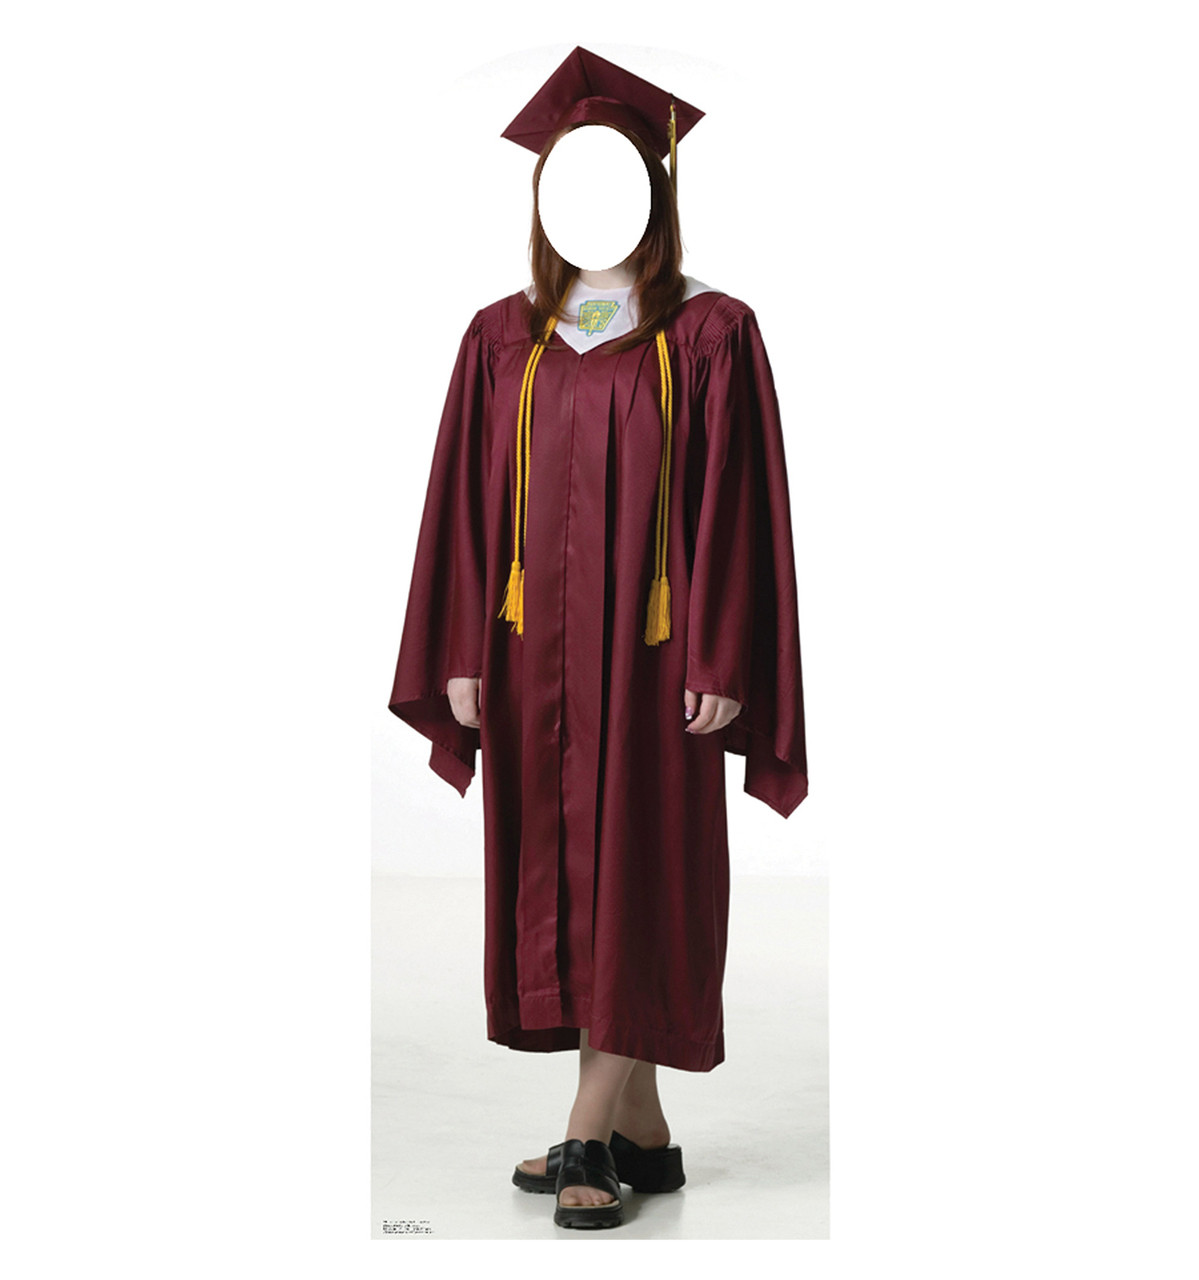 Life-size Female Graduate Red Cap and Gown Cardboard Standup ...